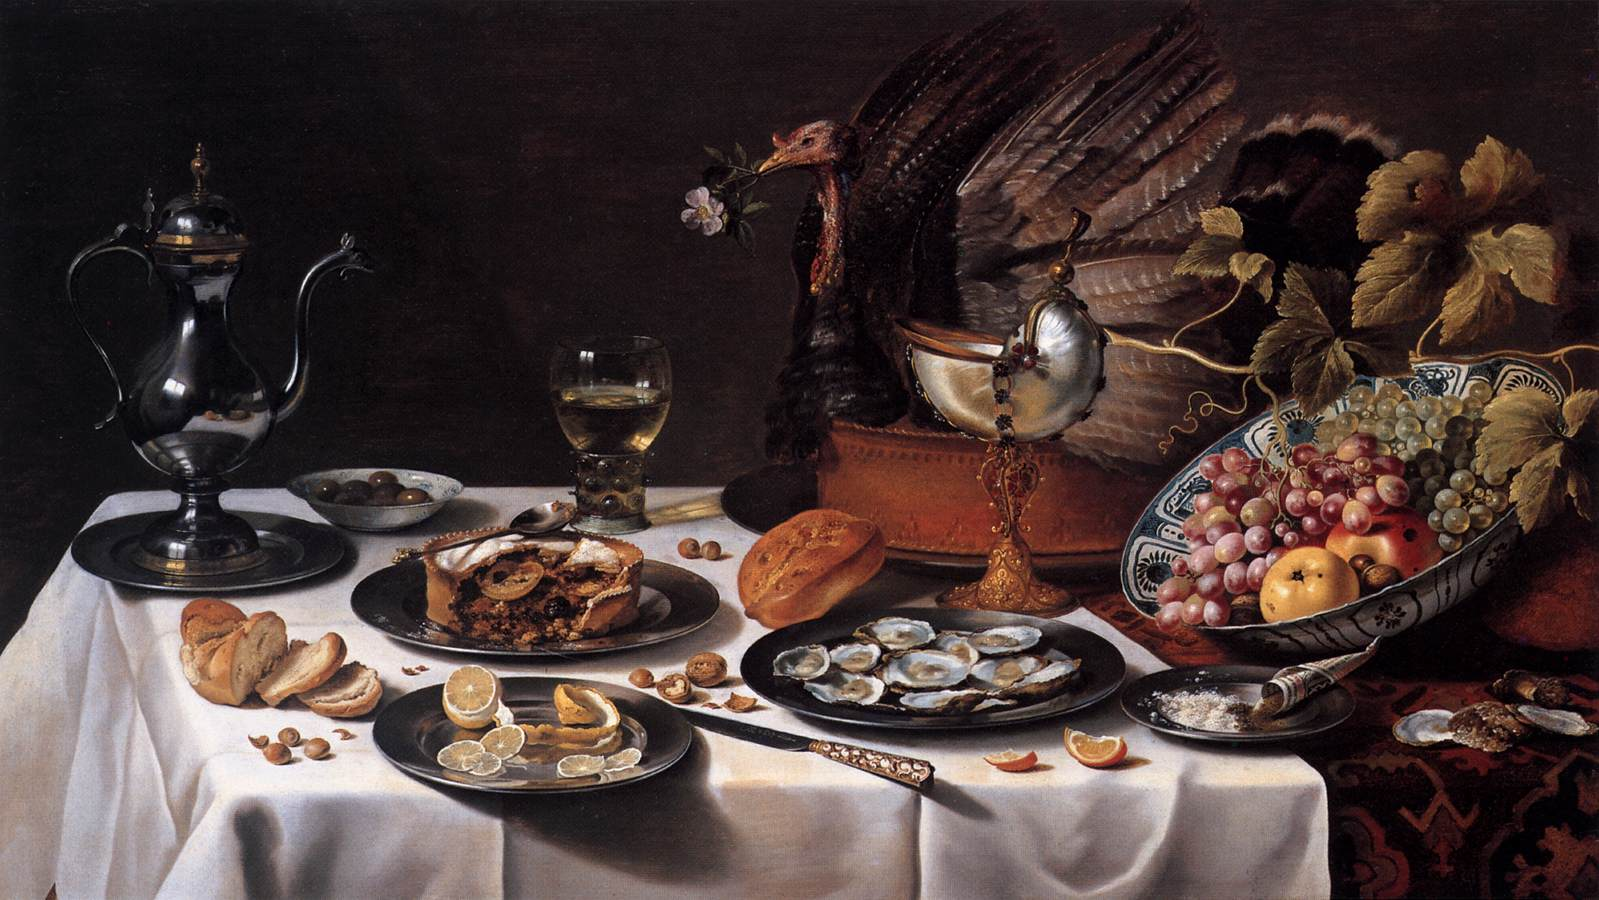 Still Life with Turkey Pie - 1627 - by Pieter Claesz